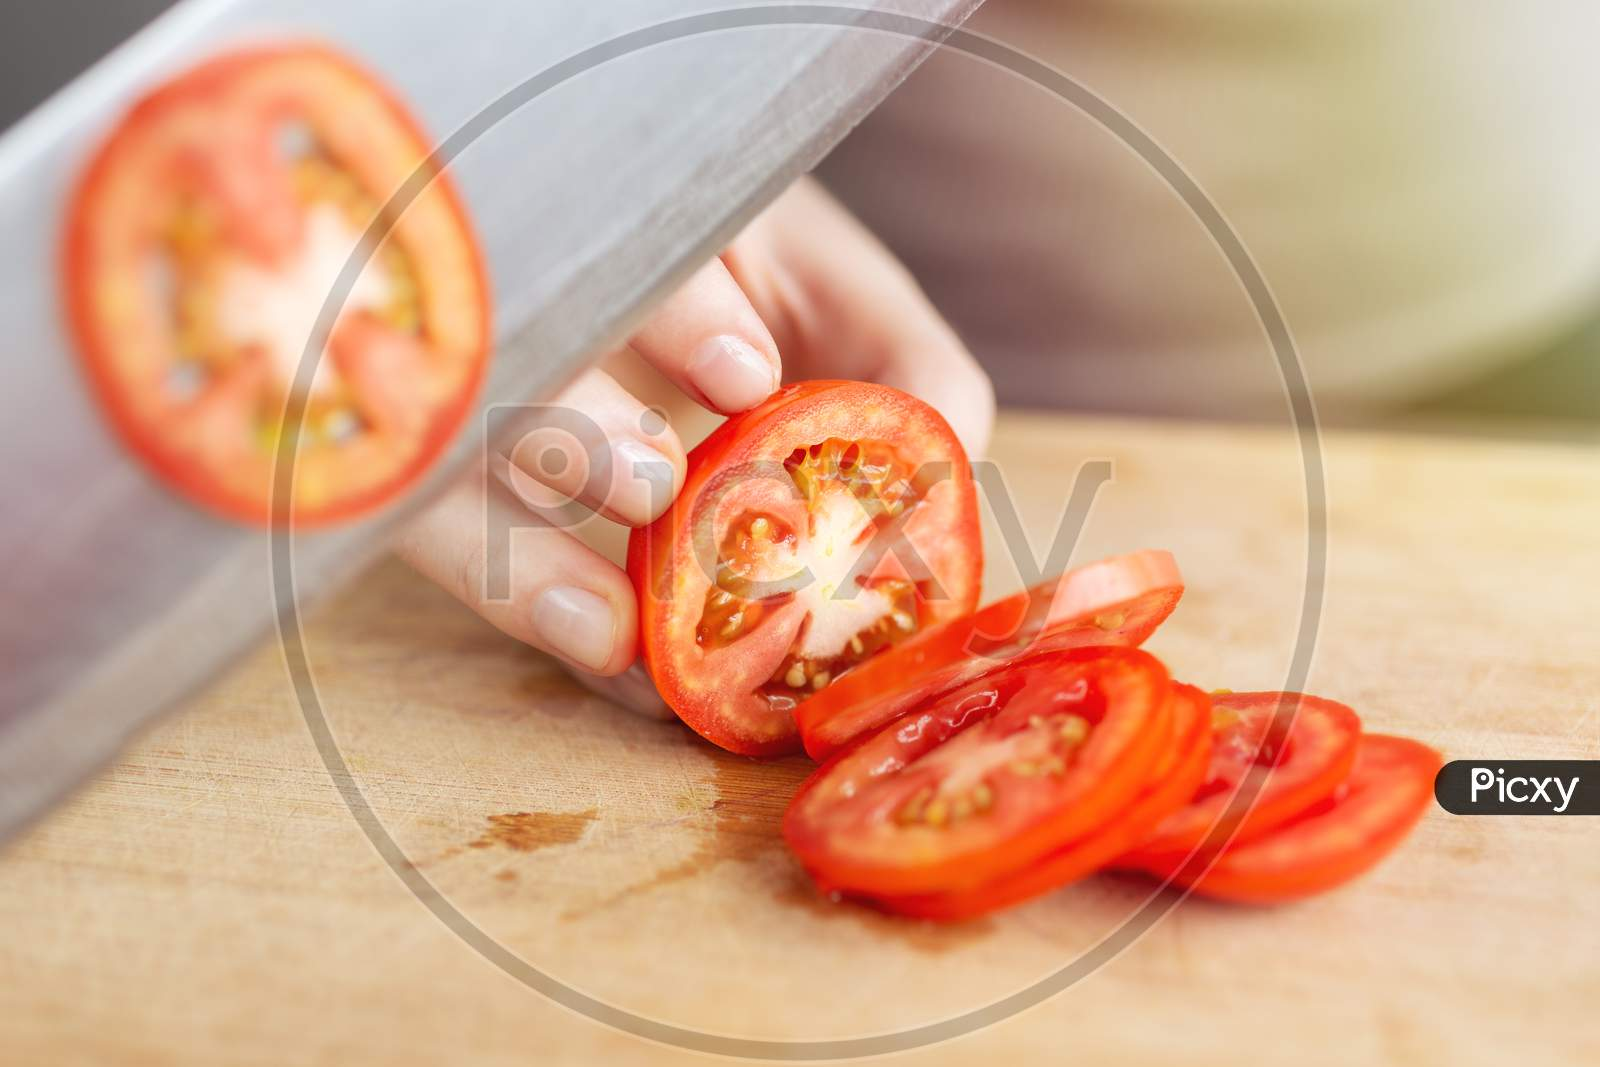 Close Up Of Red Ripe Tomato Cutting With A Knife. Healthy Food Preparation Concept